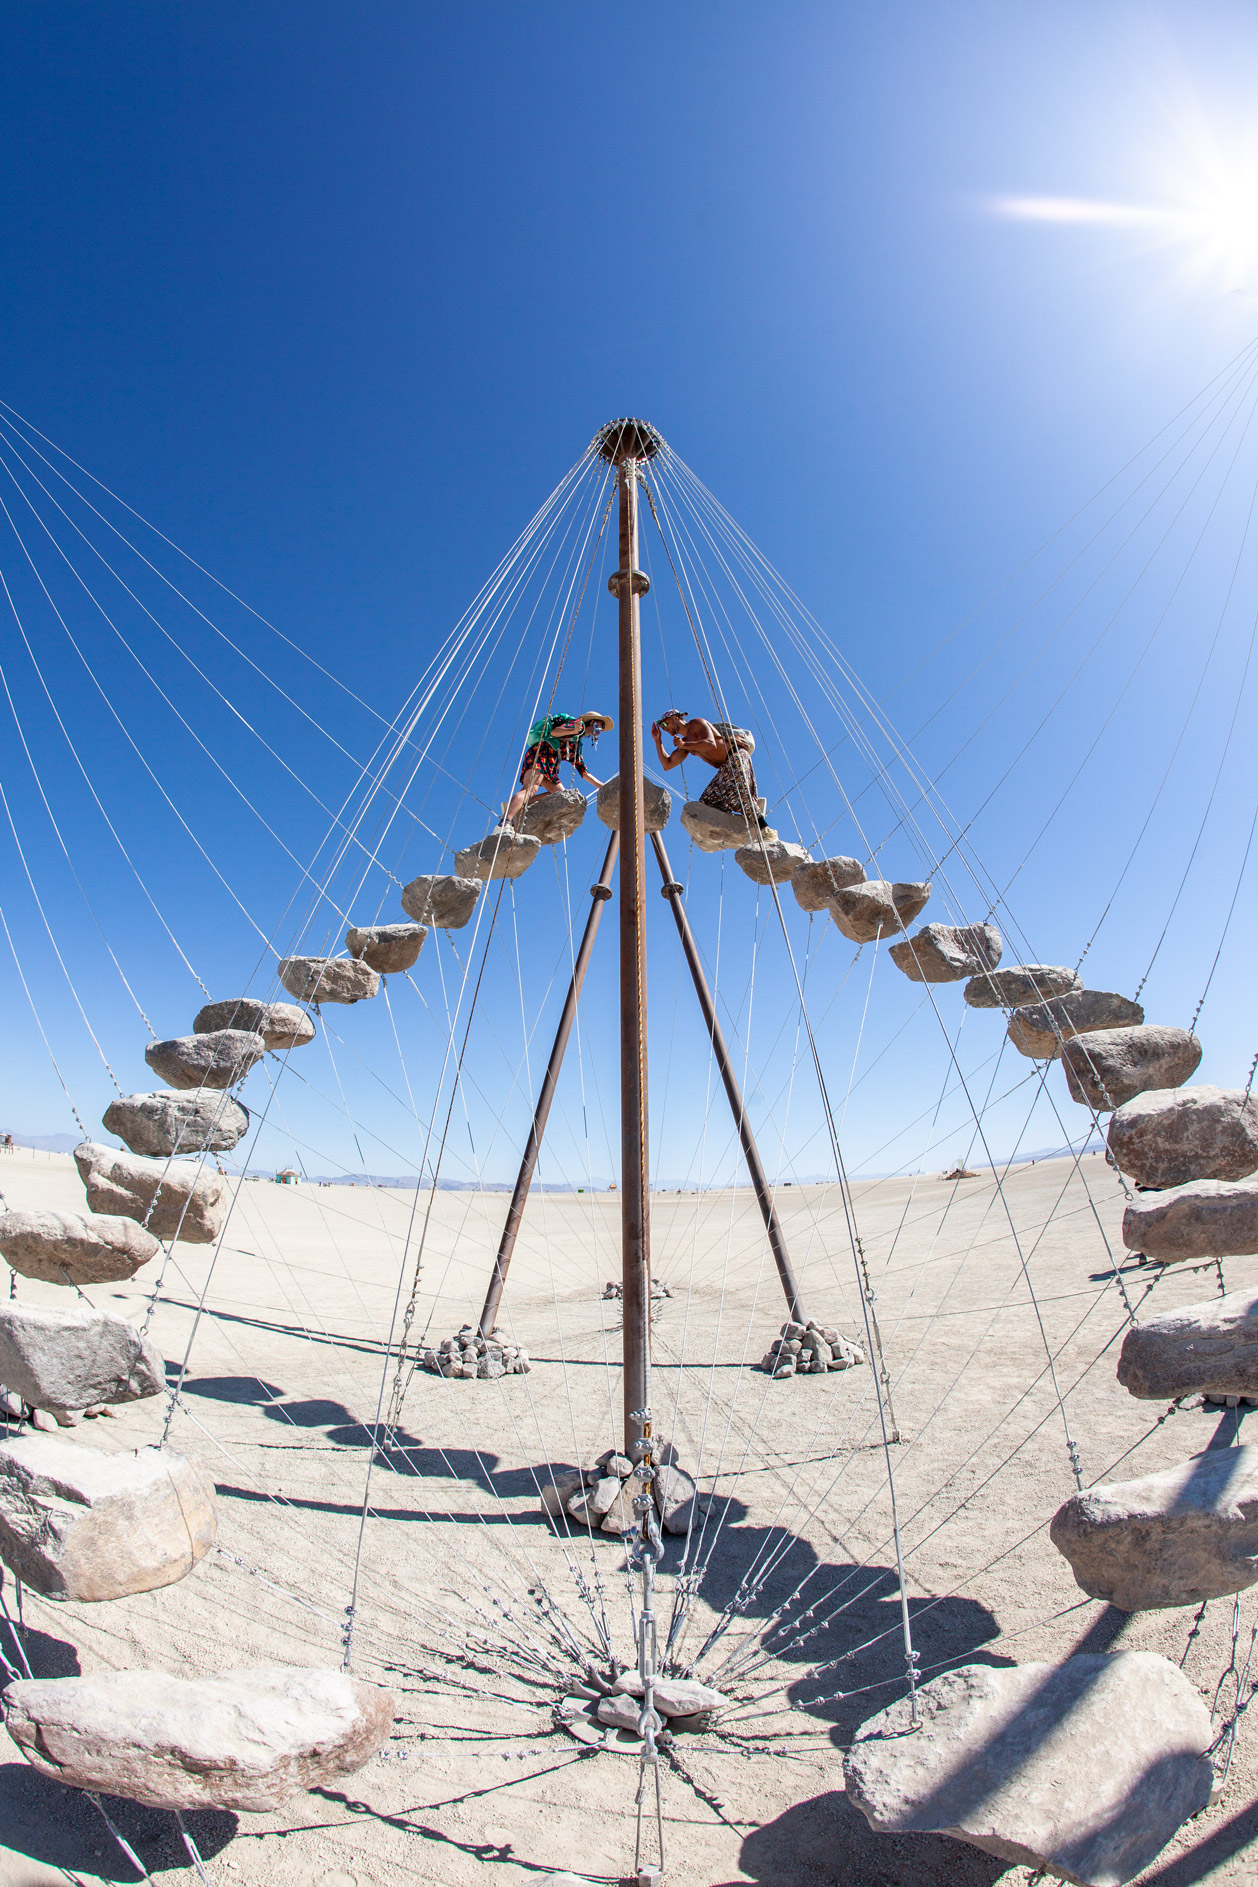 Stone 27 at Burning Man 2019